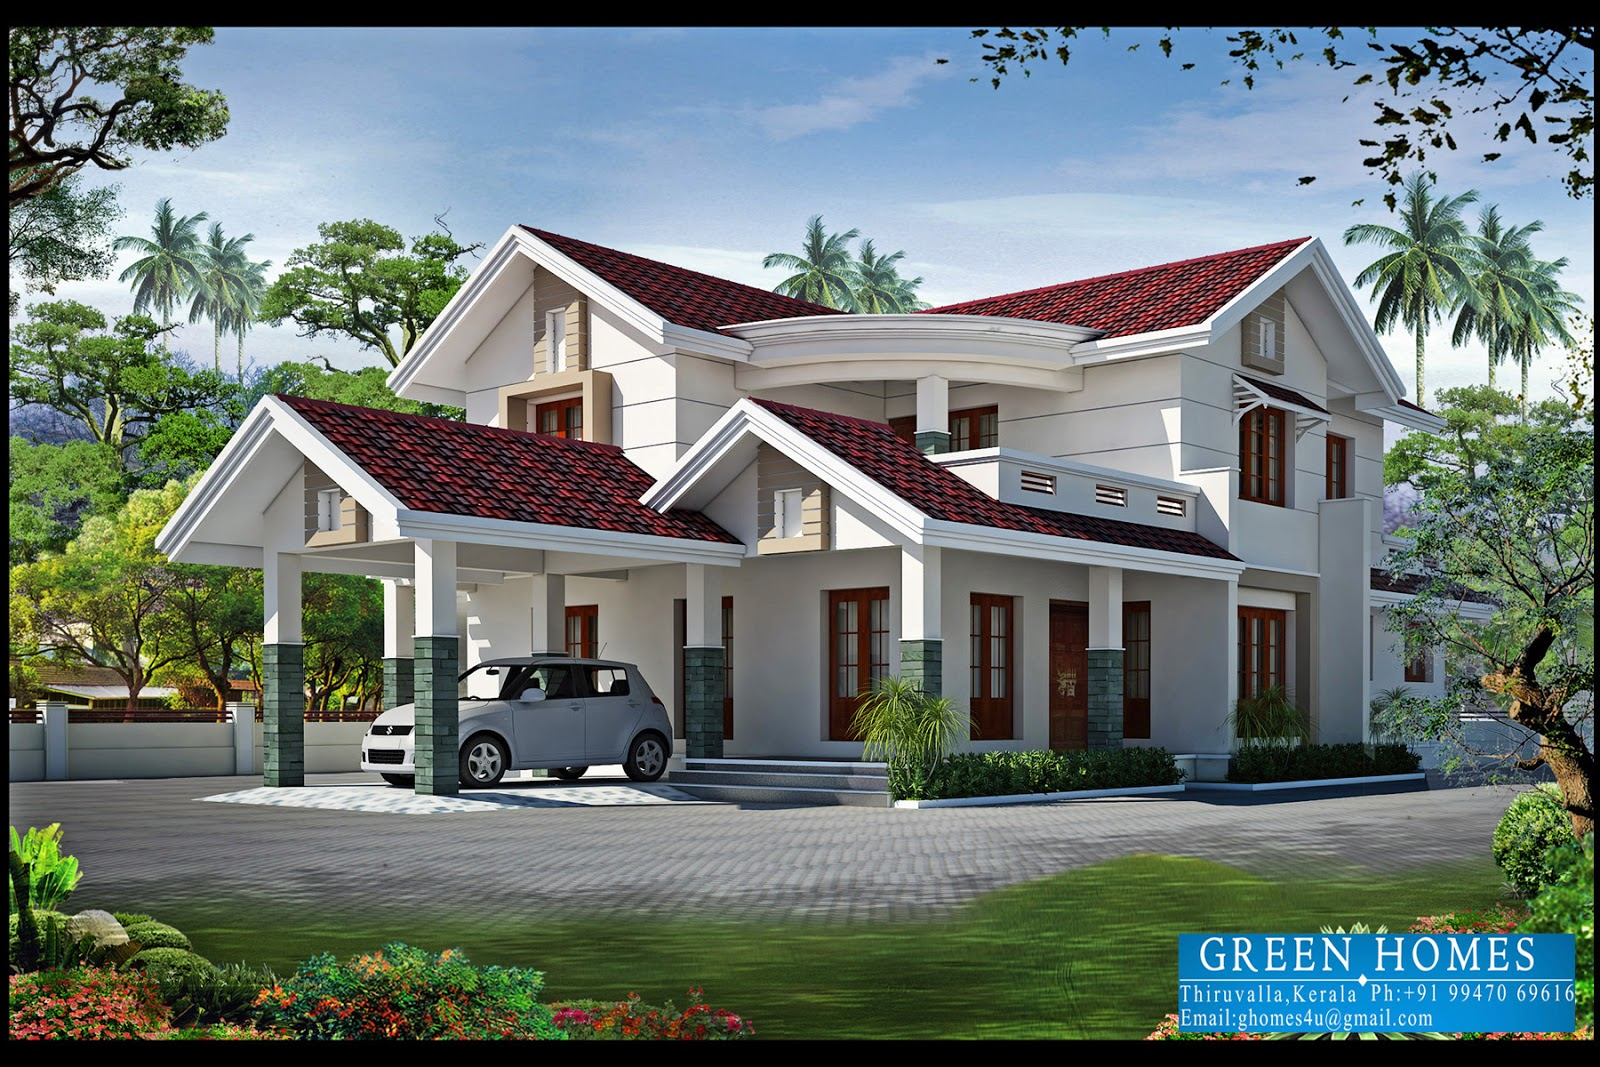 Green homes 4bhk kerala home design 2550 for Kerala house images gallery